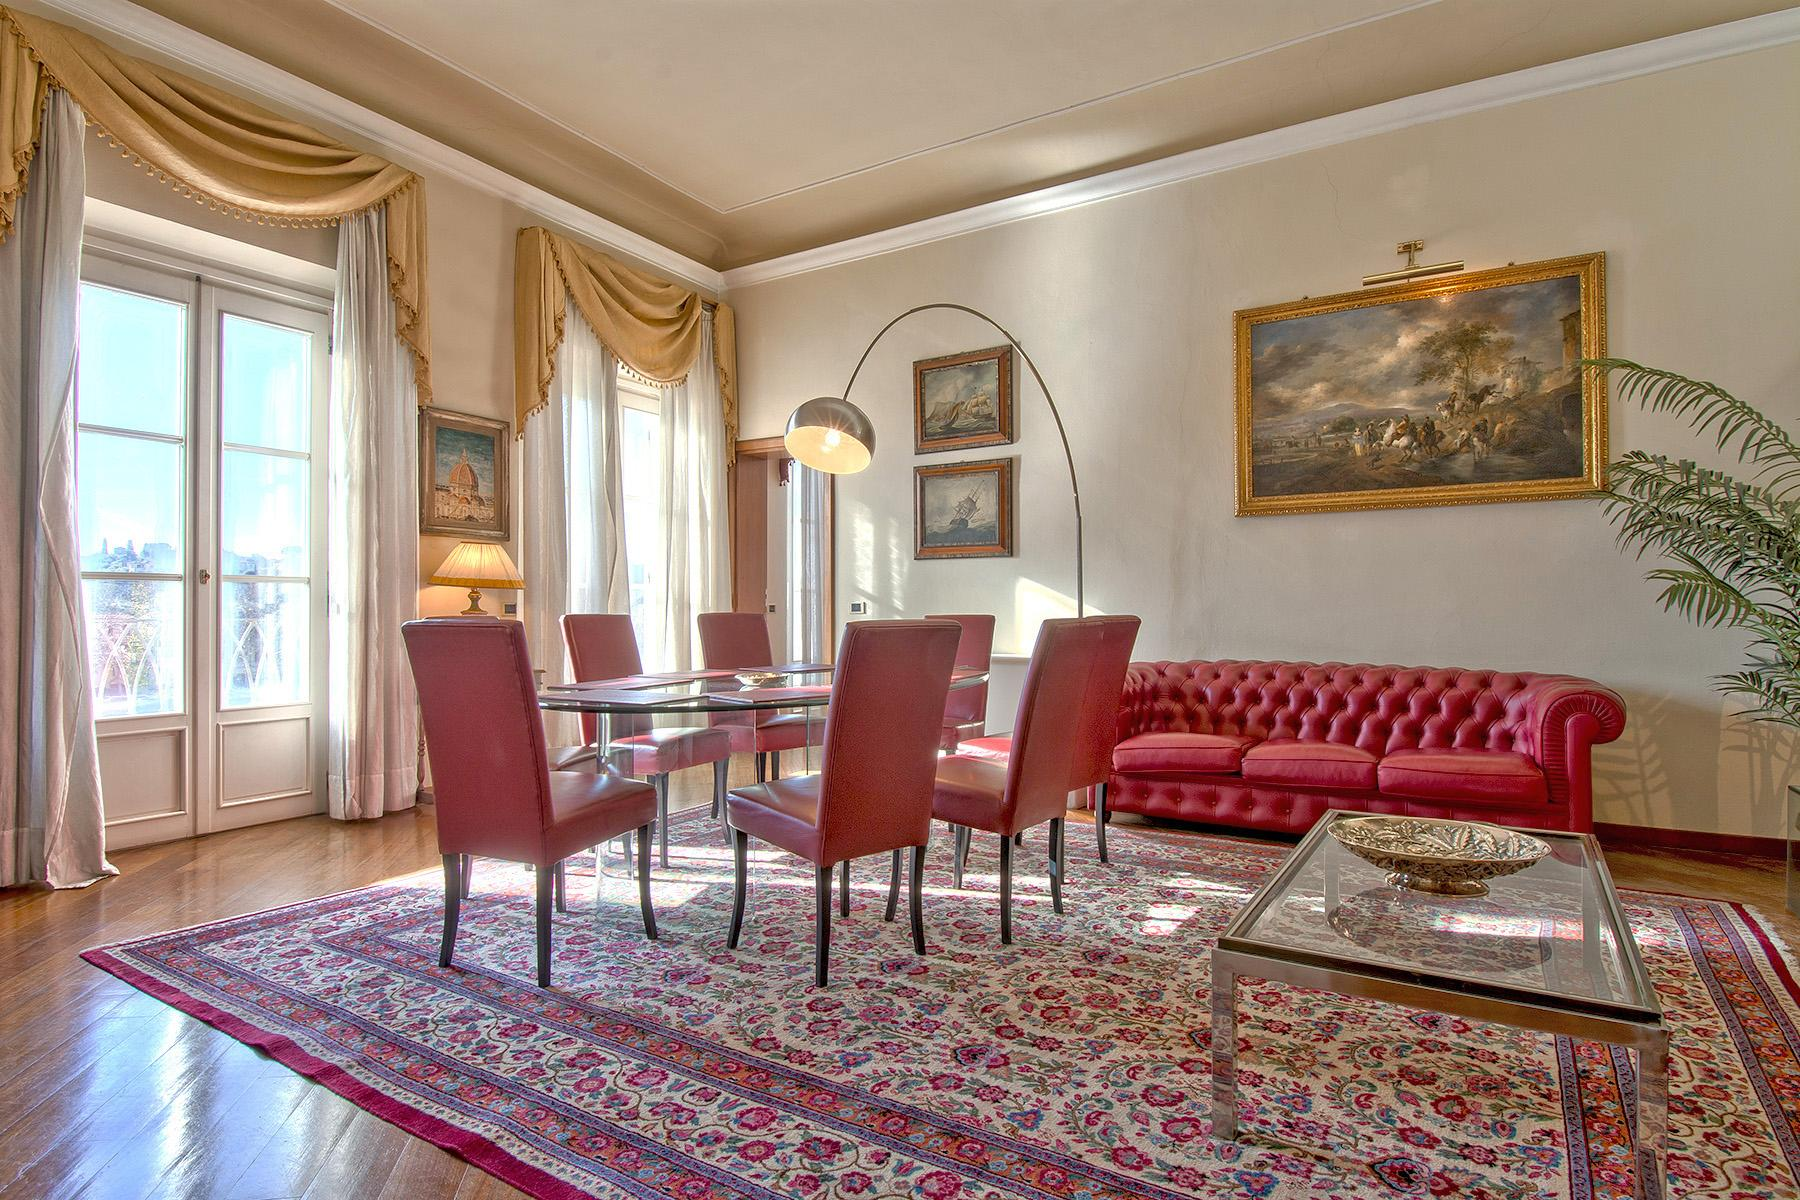 Luxury apartment overlooking the Arno River - 1